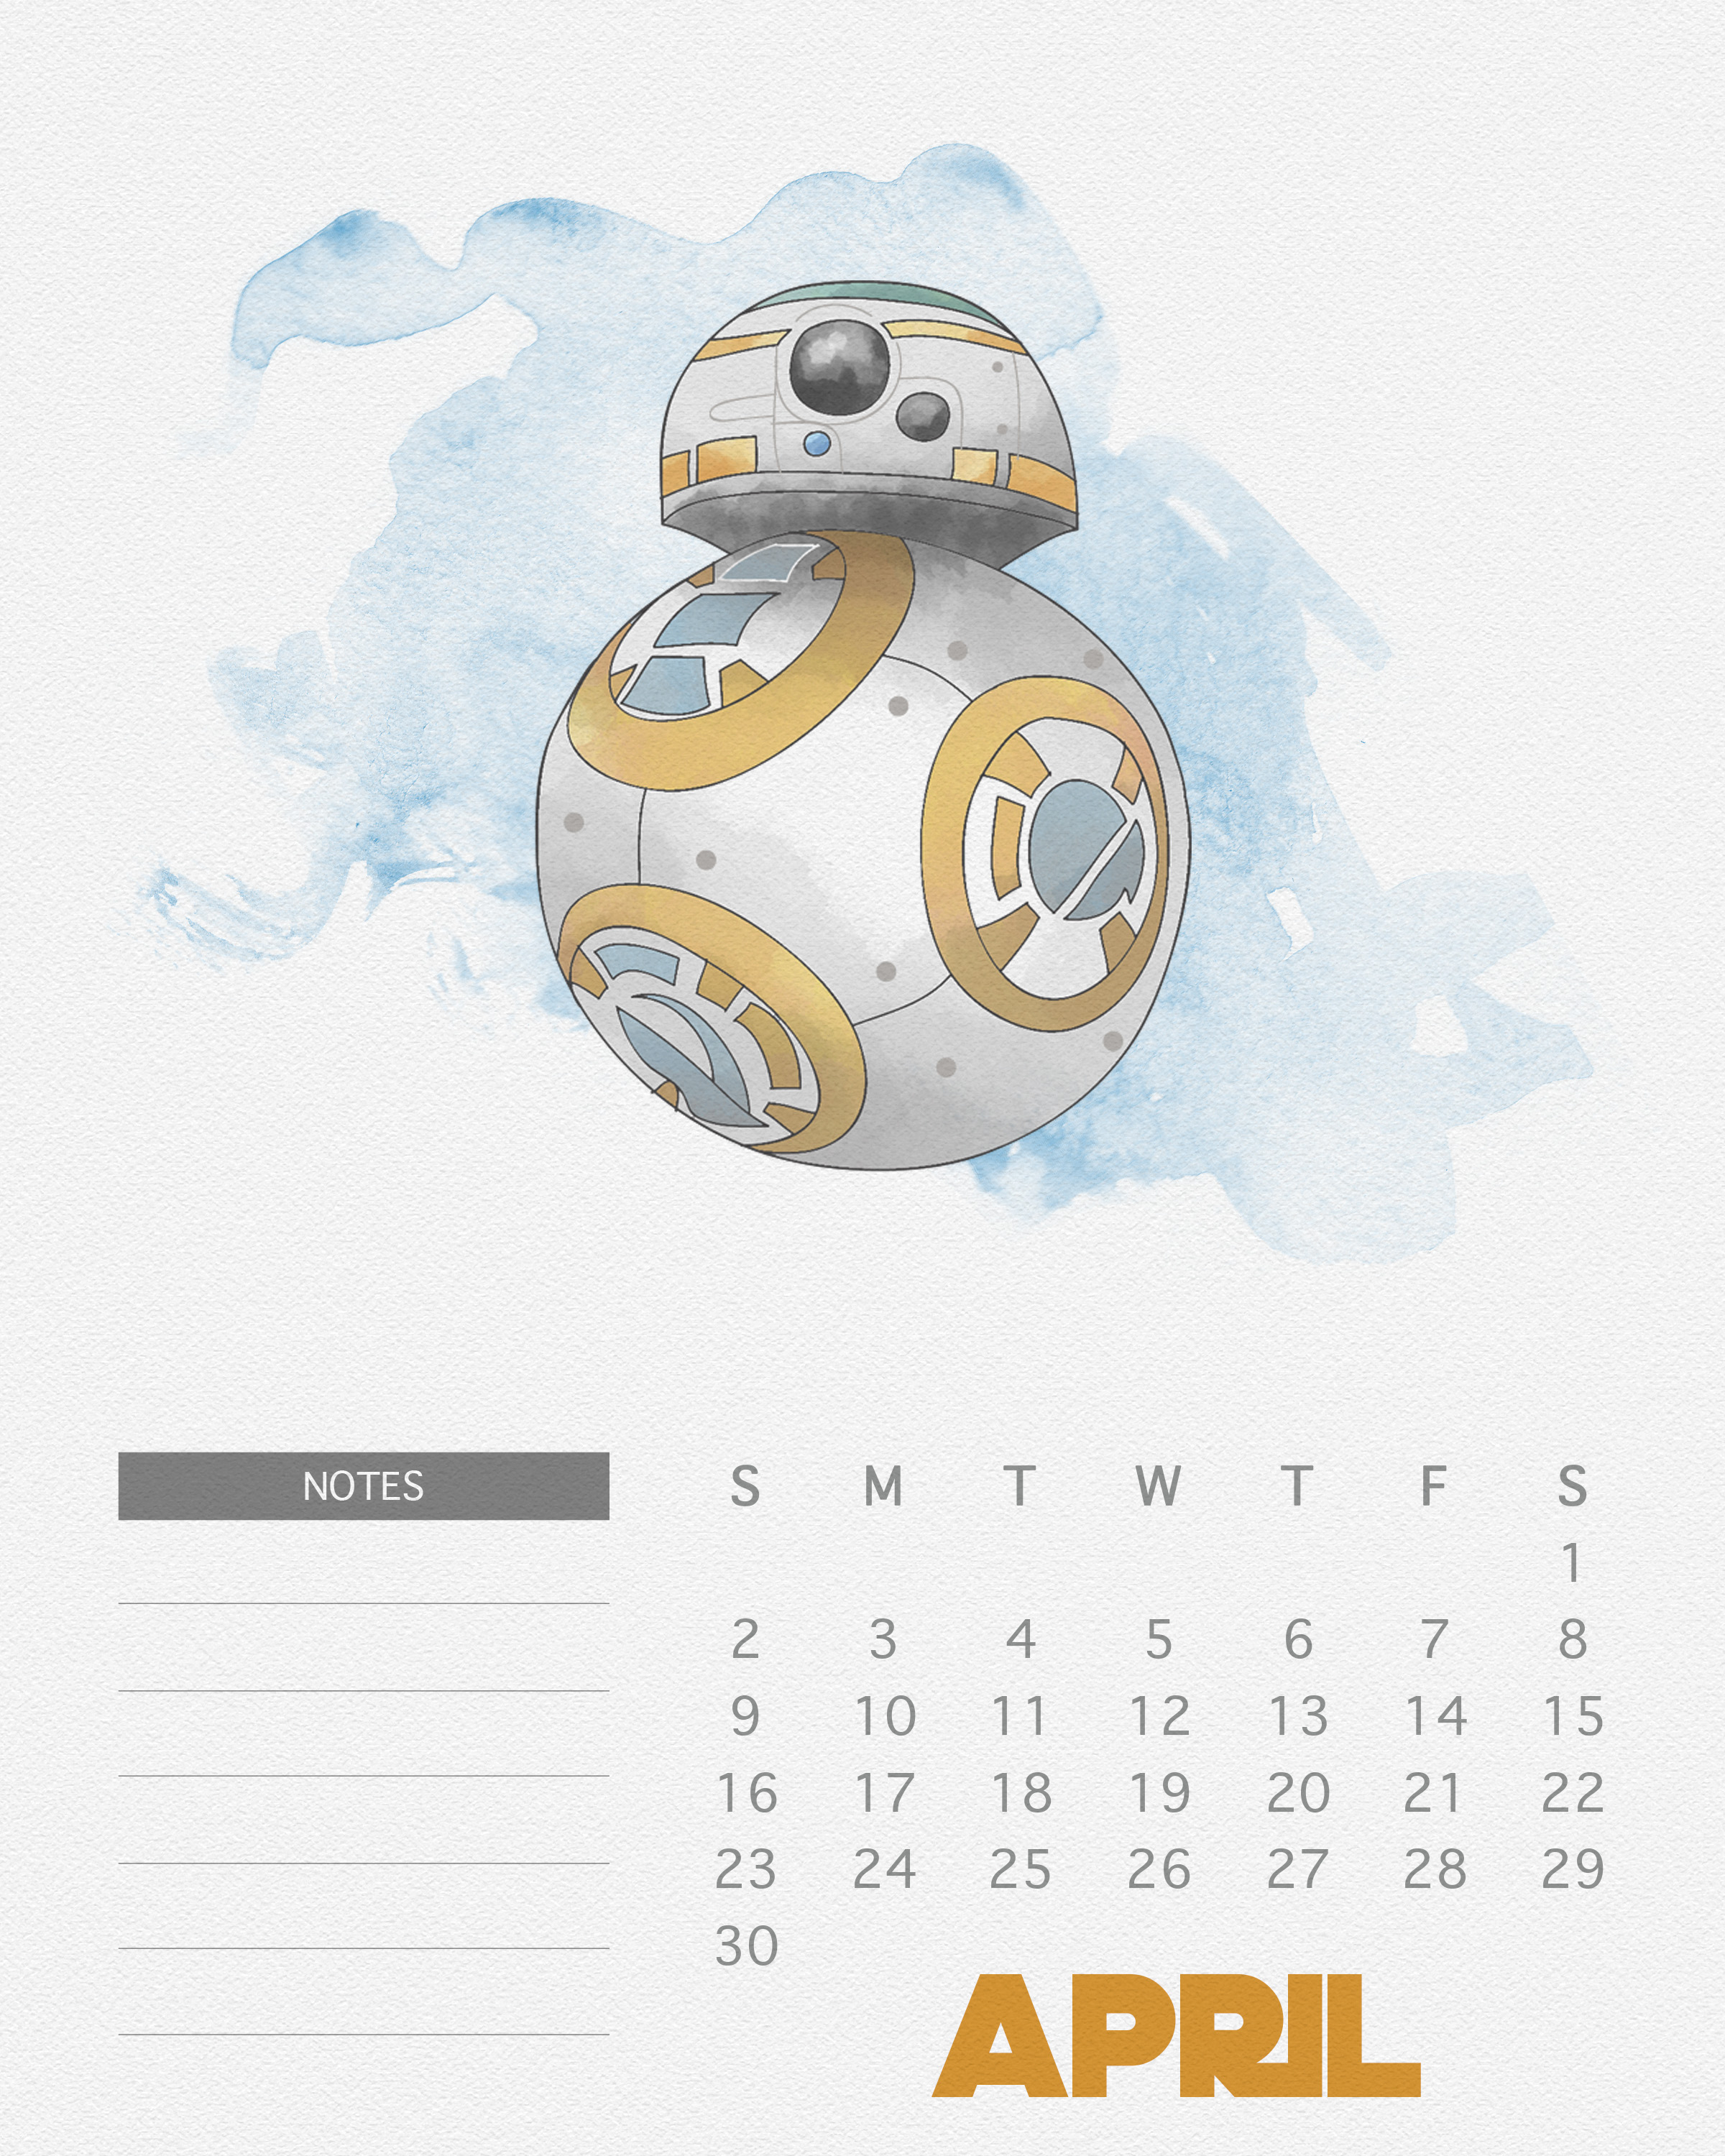 Free Printable 2017 Watercolor Star Wars Calendar  The throughout Star Wars Calendar Printable